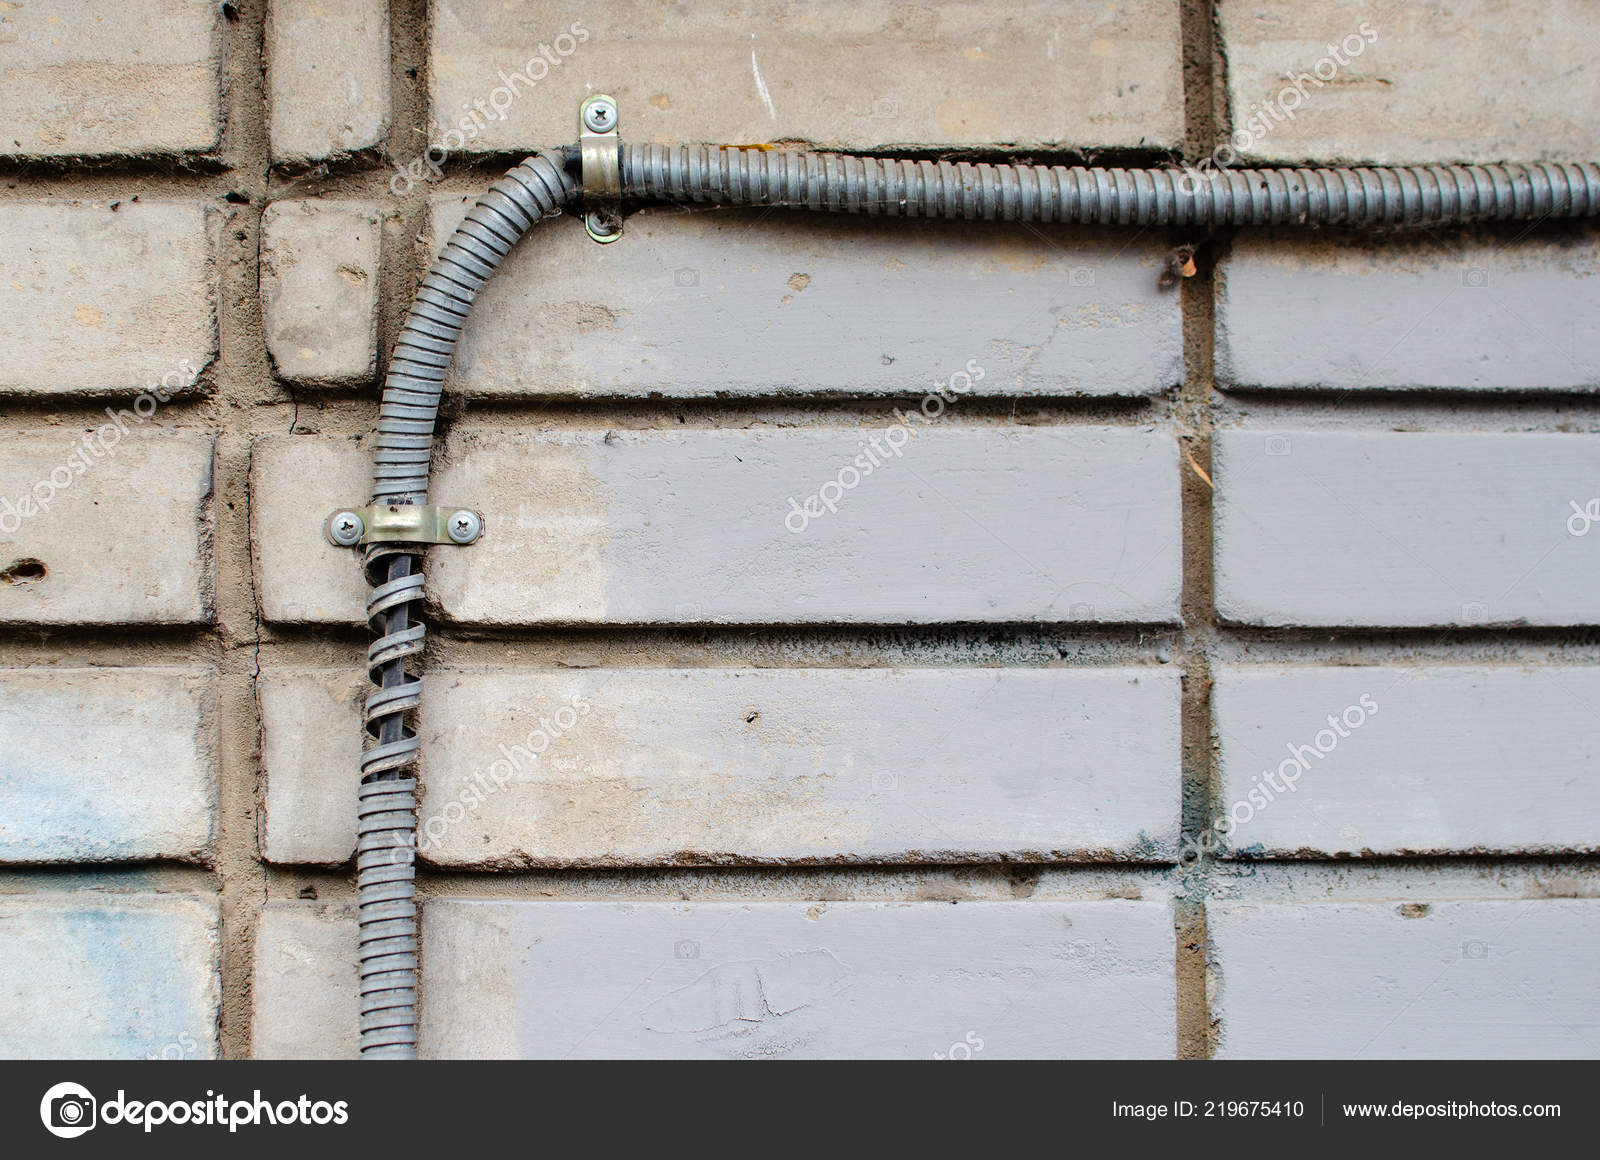 Surprising Corrugated Wires Stretched Along A White Brick Wall In The Street Wiring 101 Akebretraxxcnl